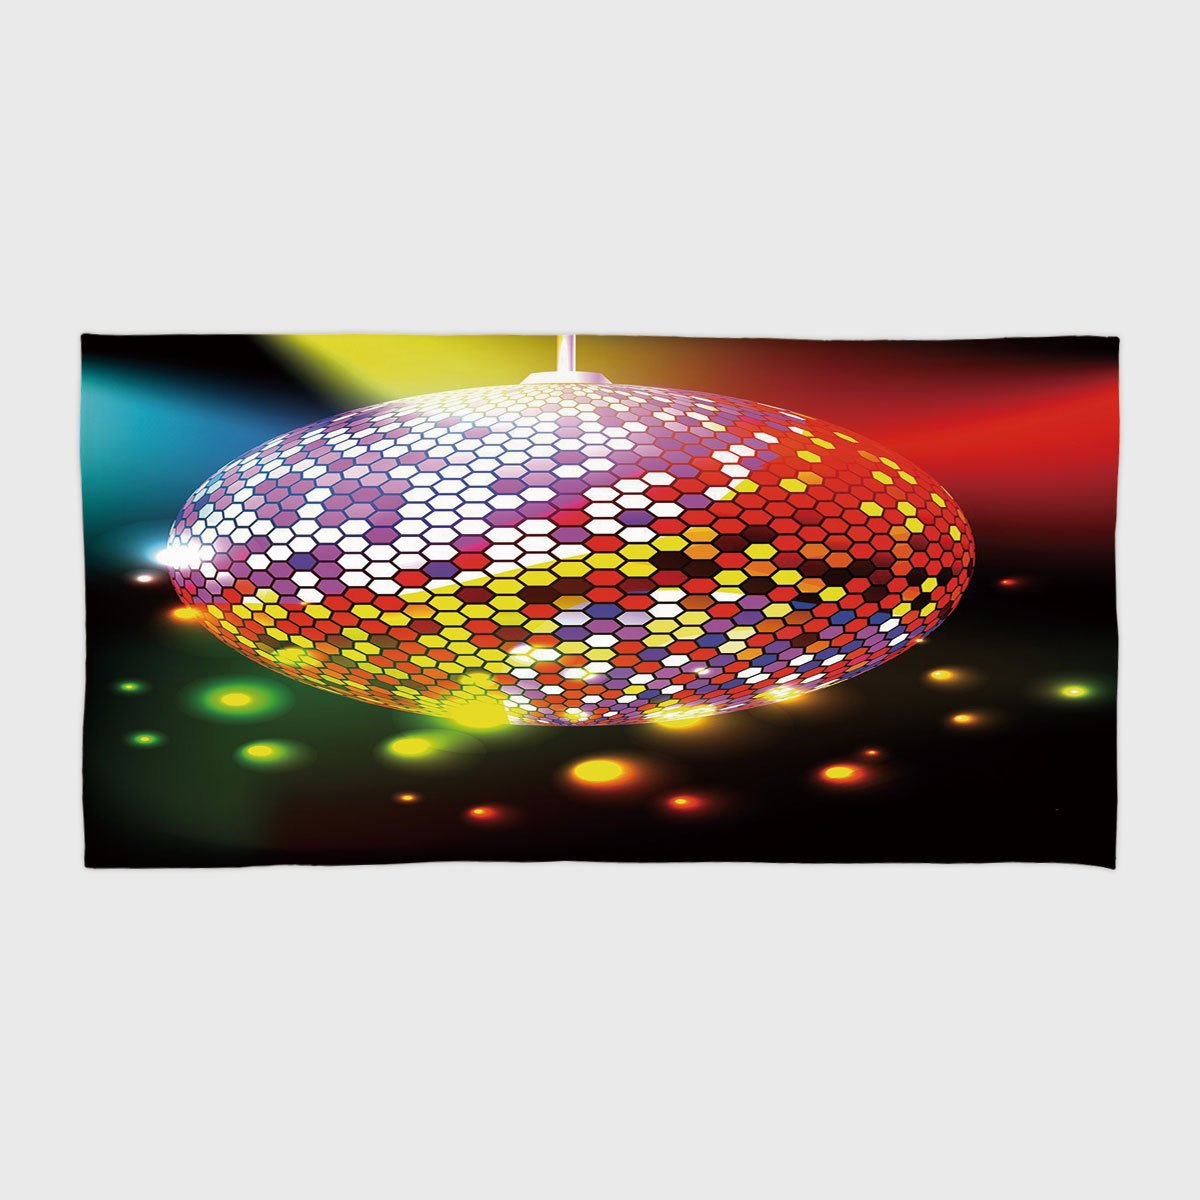 Cotton Microfiber Hotel SPA Beach Pool Bath Hand Towel,Popstar Party,Vibrant Colorful Disco Ball Nightclub Celebration Party Dance and Music Print Decorative,Multicolor,for Kids, Teens, and Adults